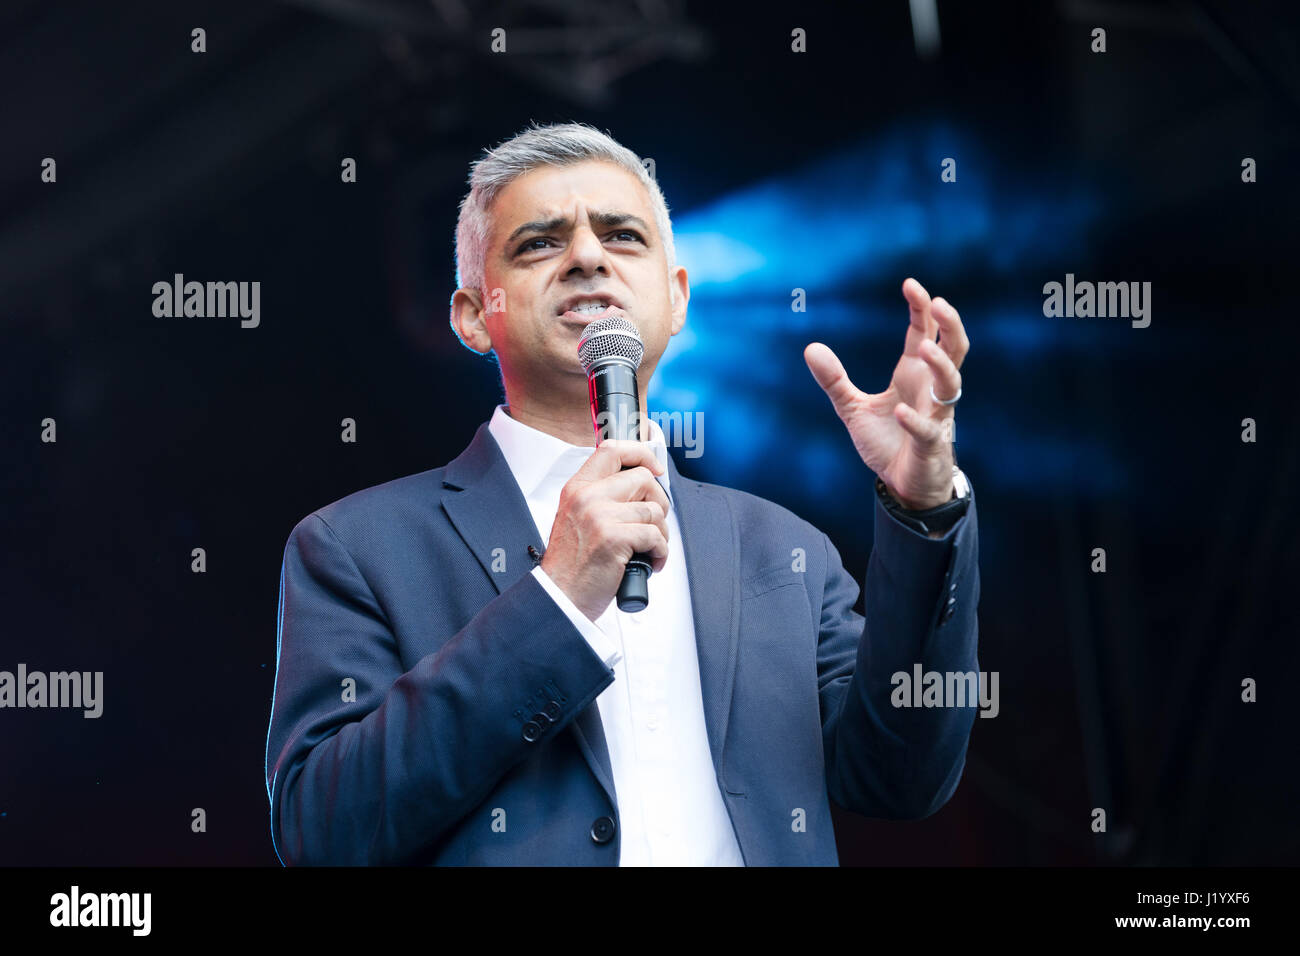 London, UK. 22nd April 2017. Sadiq Khan, Mayor of London speaking on the stage at St George's Day celebrations in Stock Photo